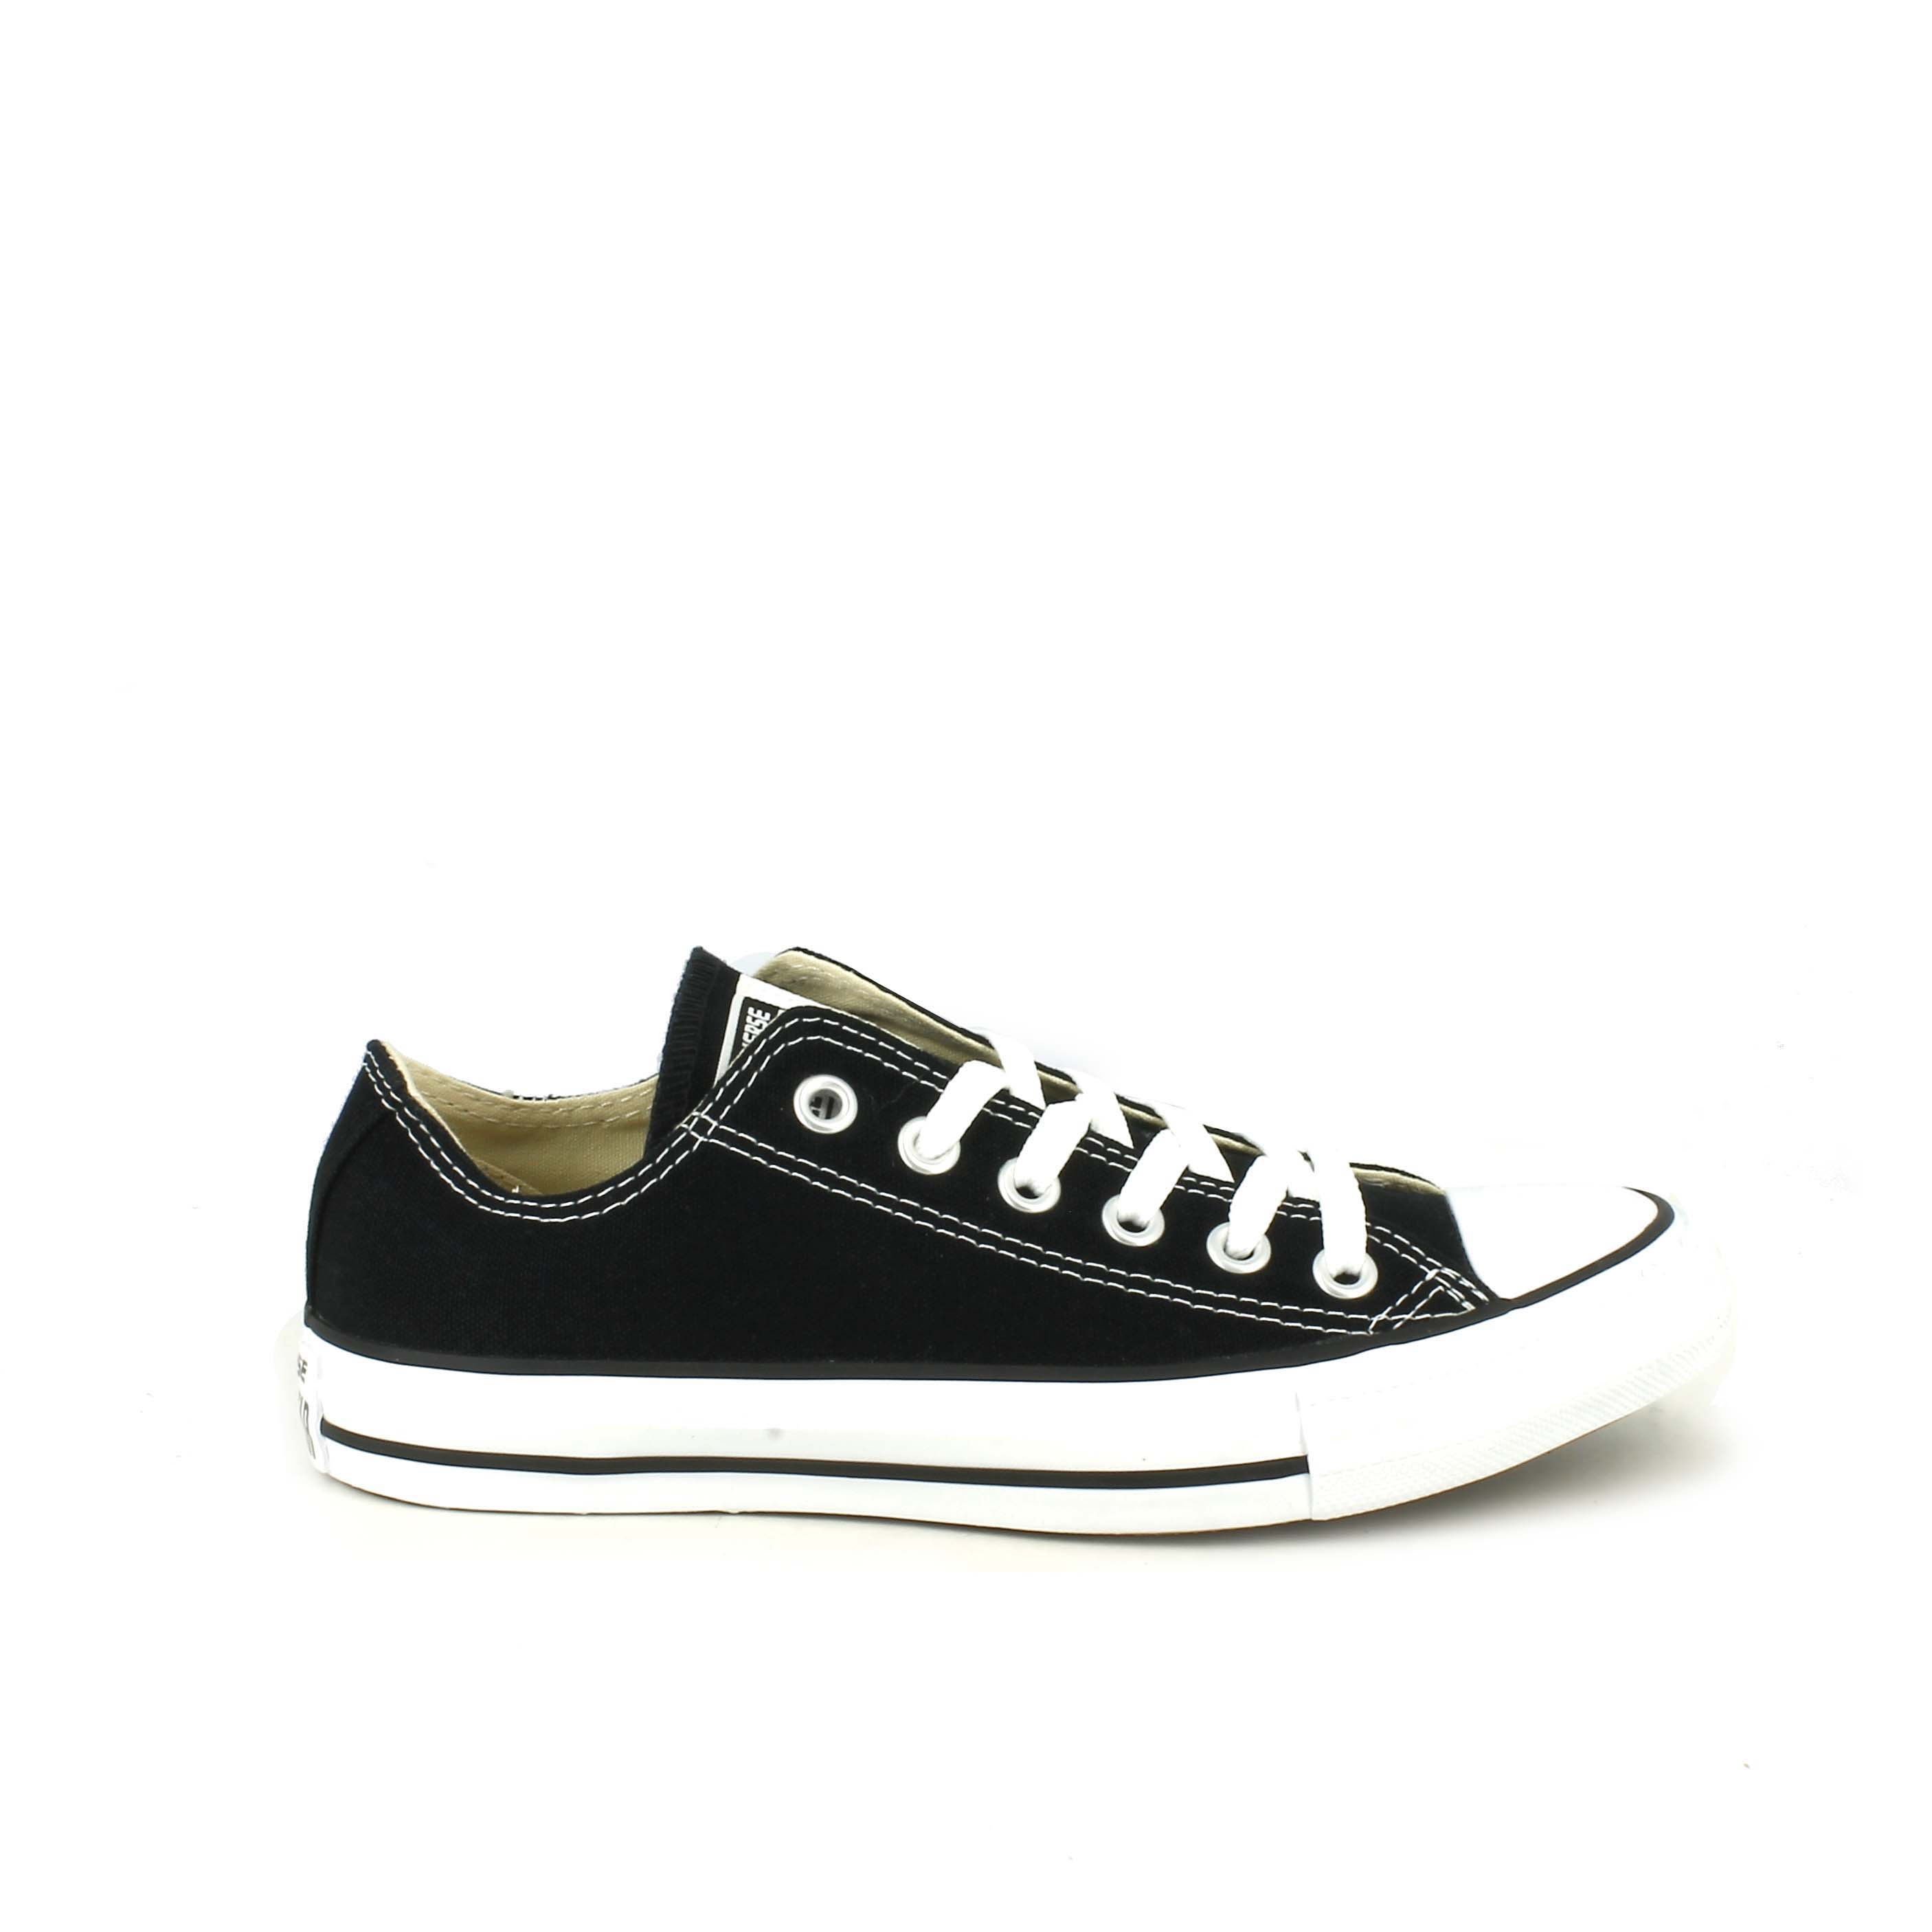 Chuck Taylor All Star Classic Low Top, Black